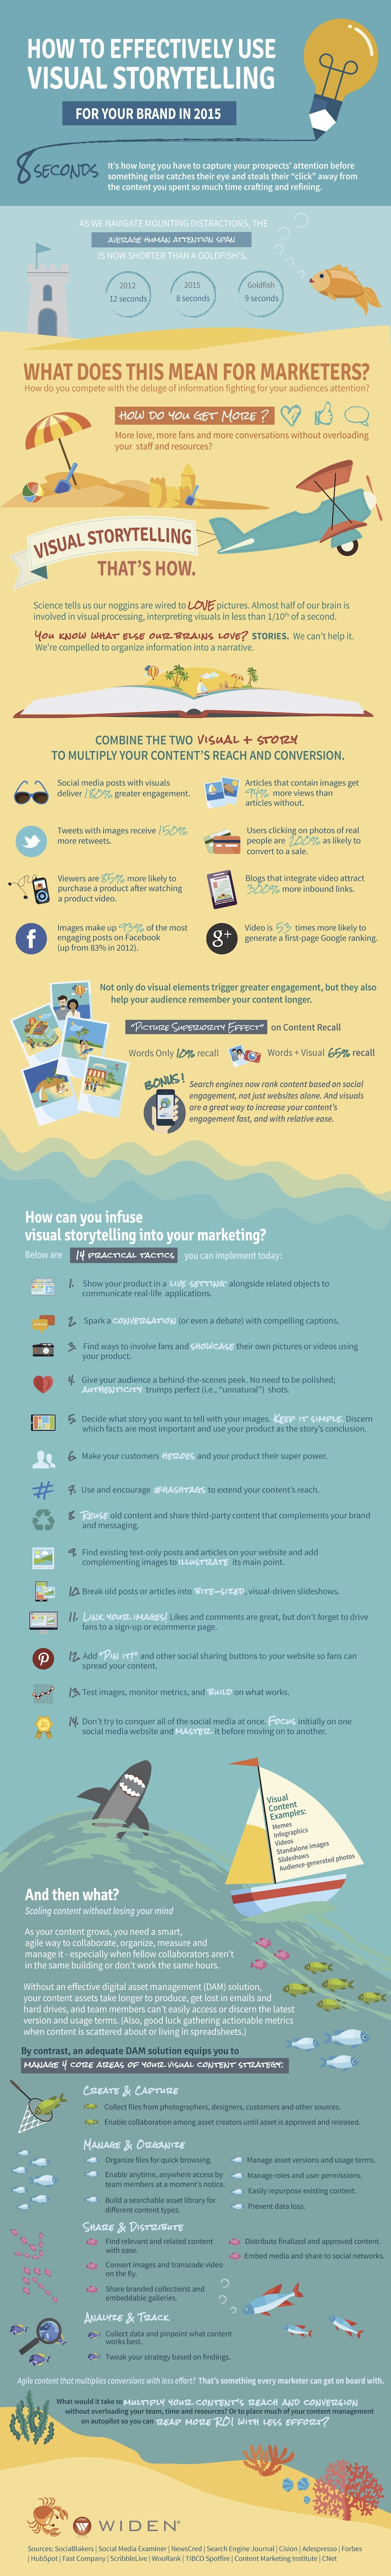 How to successfully infuse visual storytelling into your marketing efforts - infographic